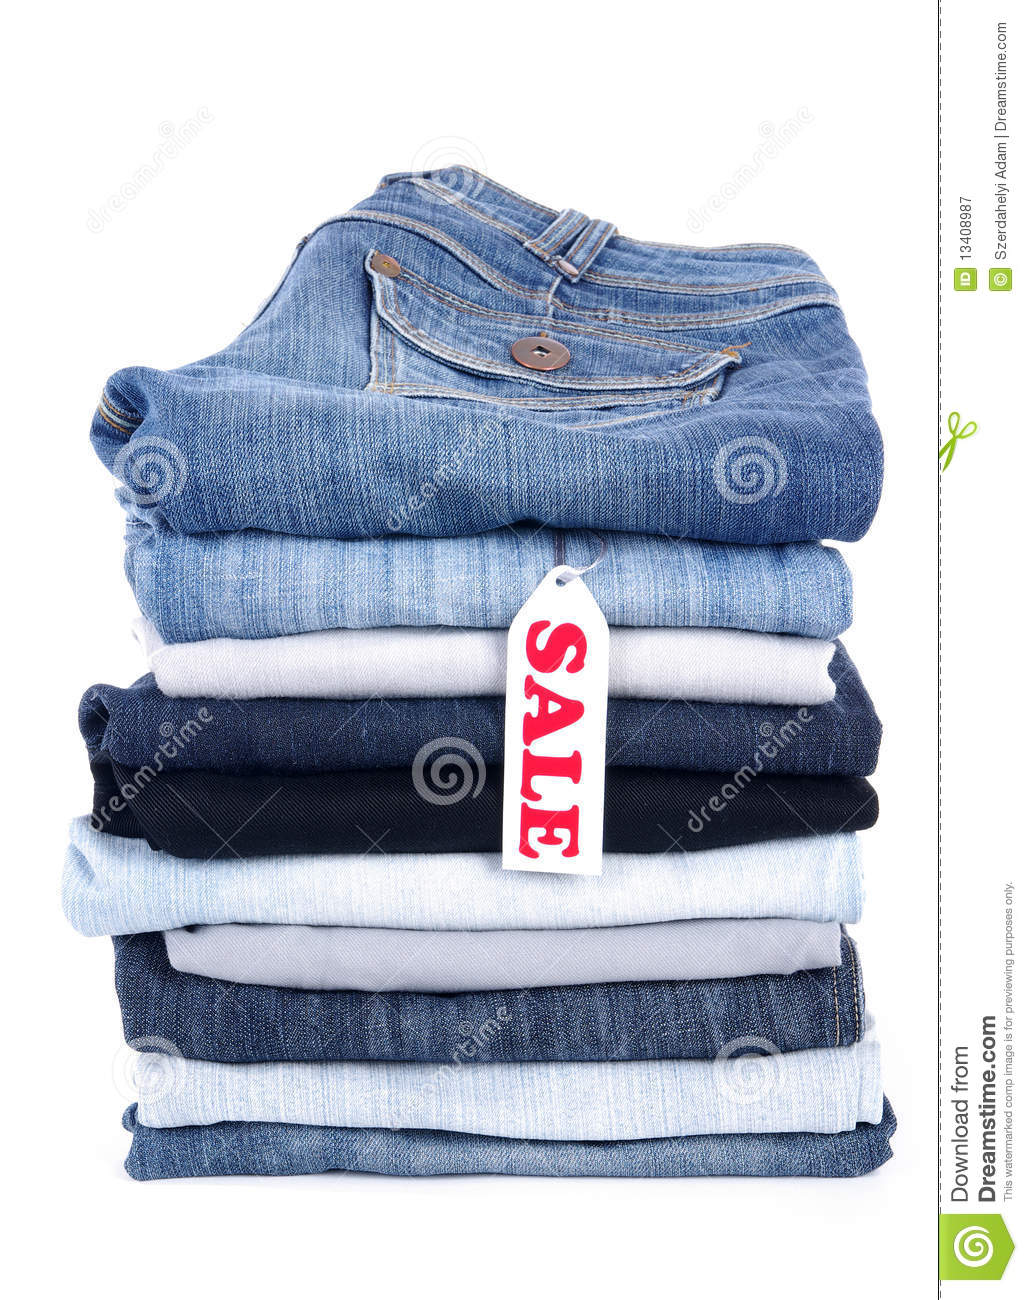 Jeans For Sale Royalty Free Stock Photography - Image: 13408987